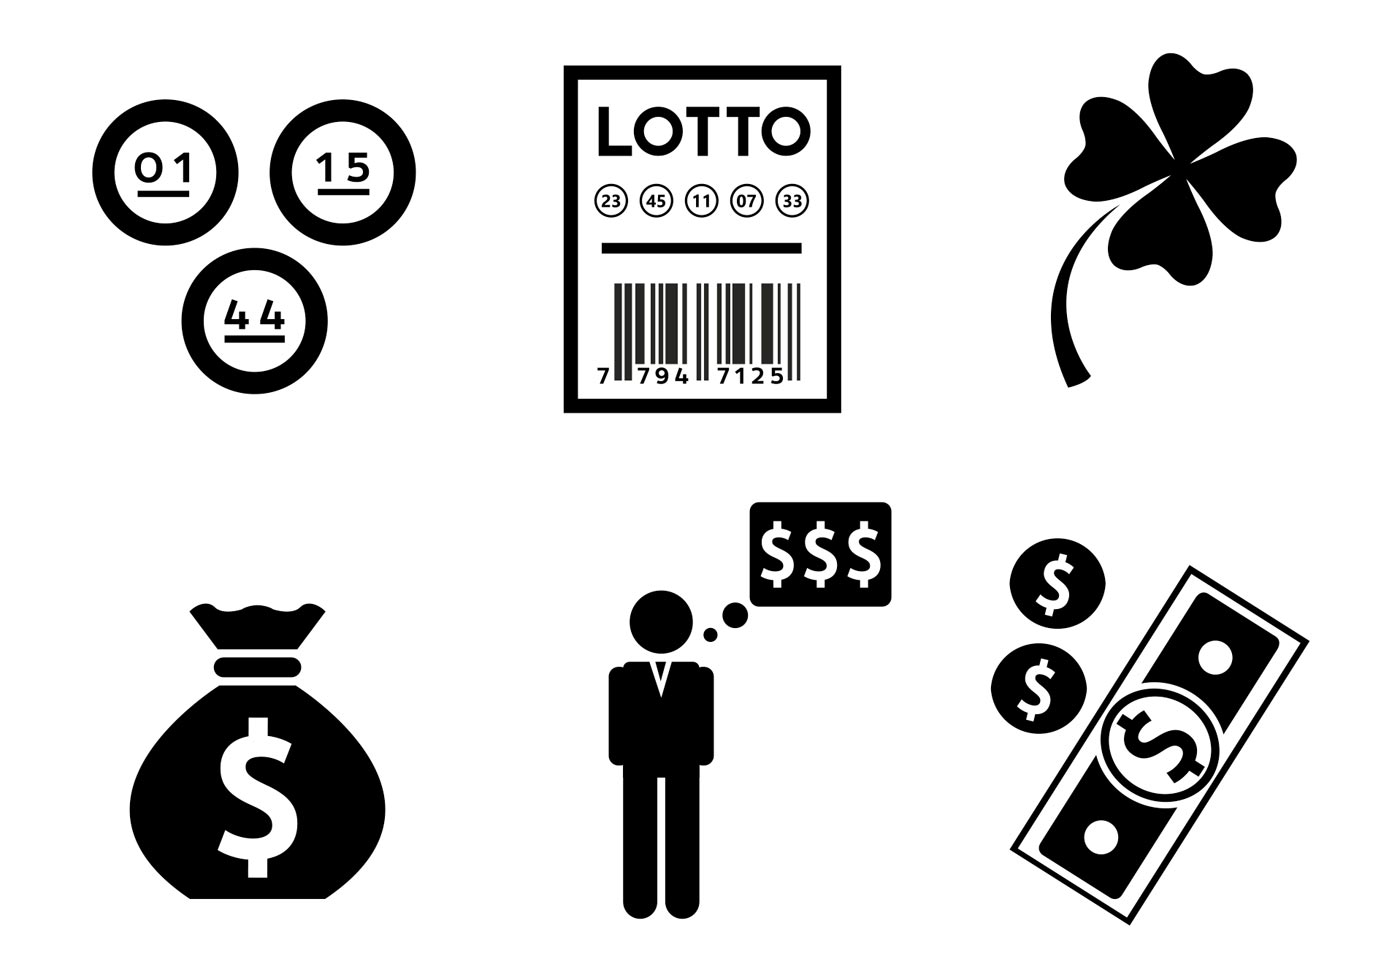 Lottery Themed Vector Icons - Download Free Vectors, Clipart